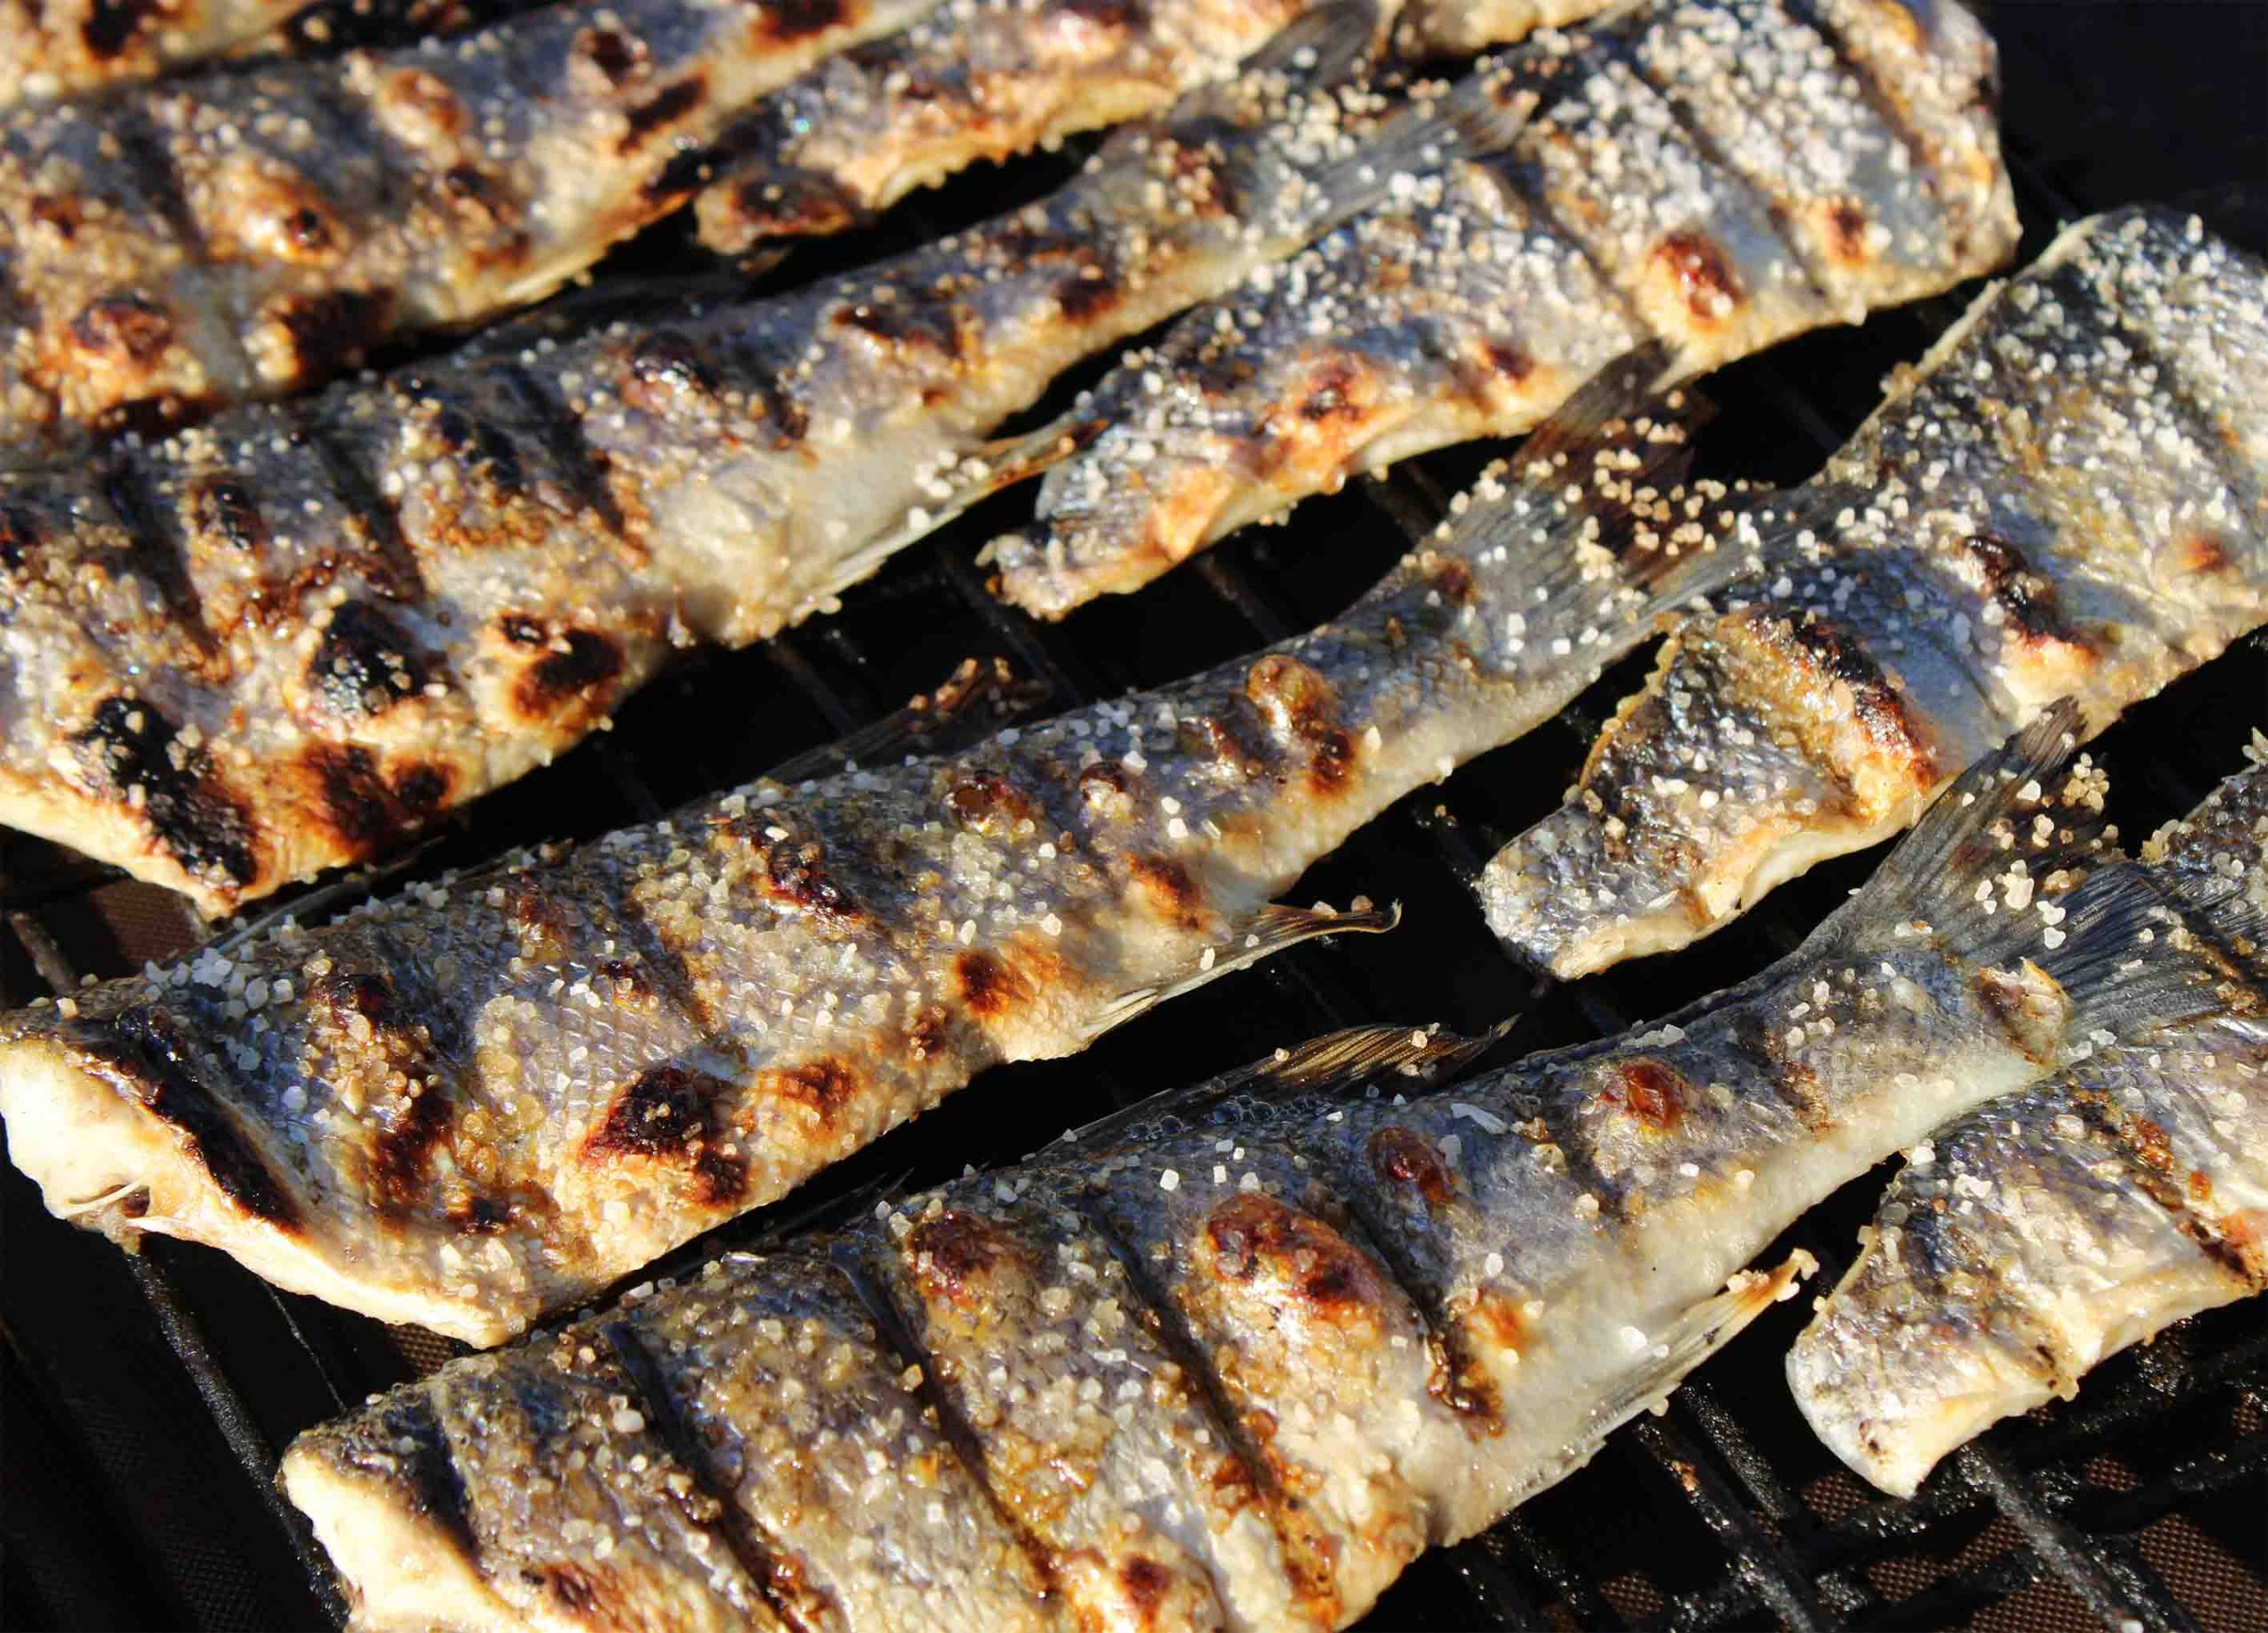 Fish at the Grill